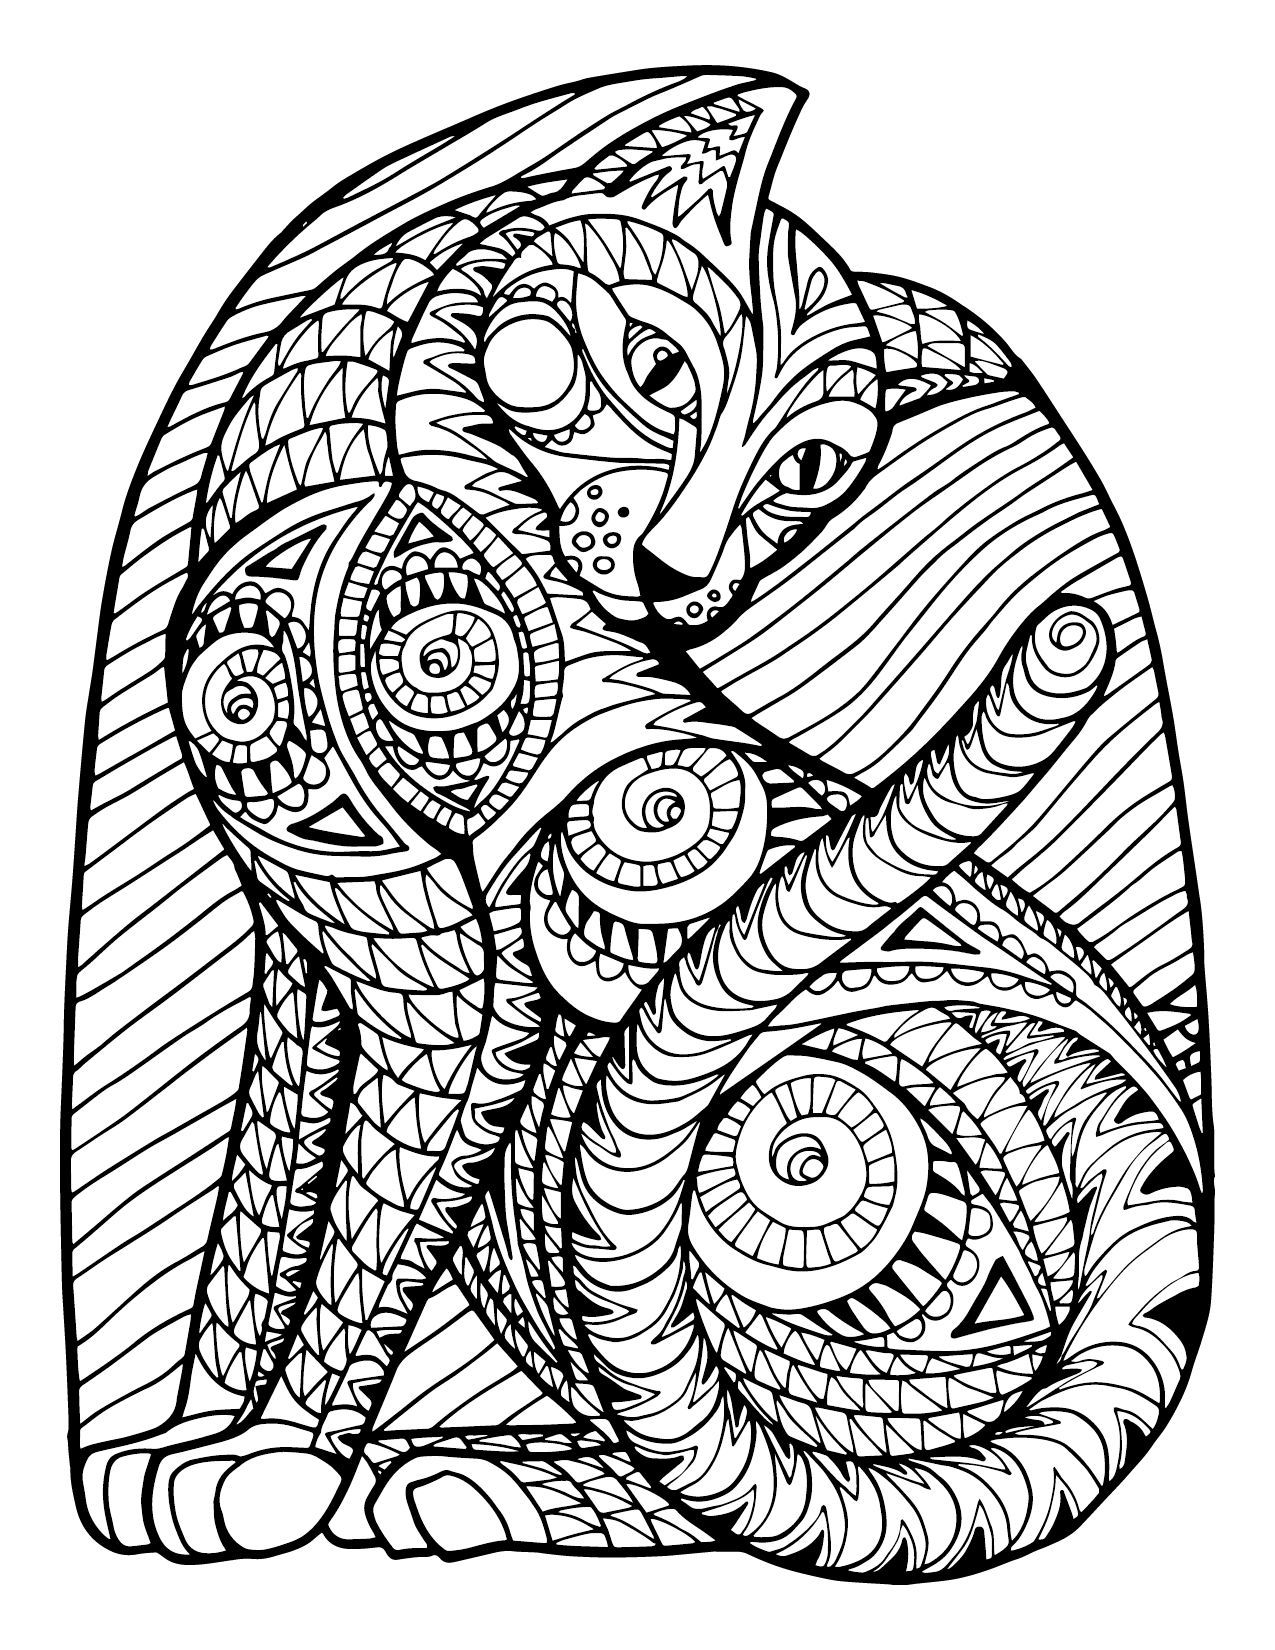 Stress relieving cats coloring - Cat Adult Coloring Book 20 Stress Relieving Landscapes And Amazing Animal Patterns Coloring Books For Adults Kindle Adult Coloring Books Book Kindle